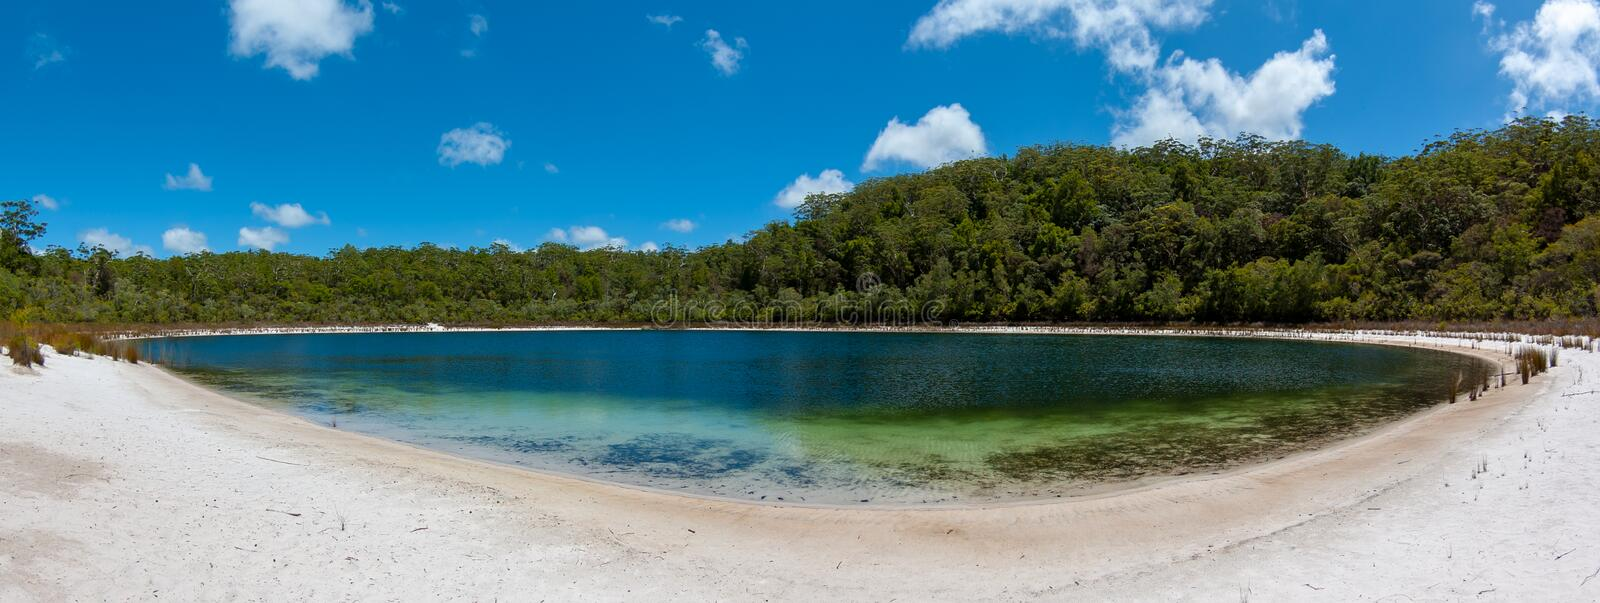 An empty, peaceful and beautiful lake on Fraser Island. Fraser Island is dotted with many small inland lakes, all of them crystal clear water and perfect white stock photos